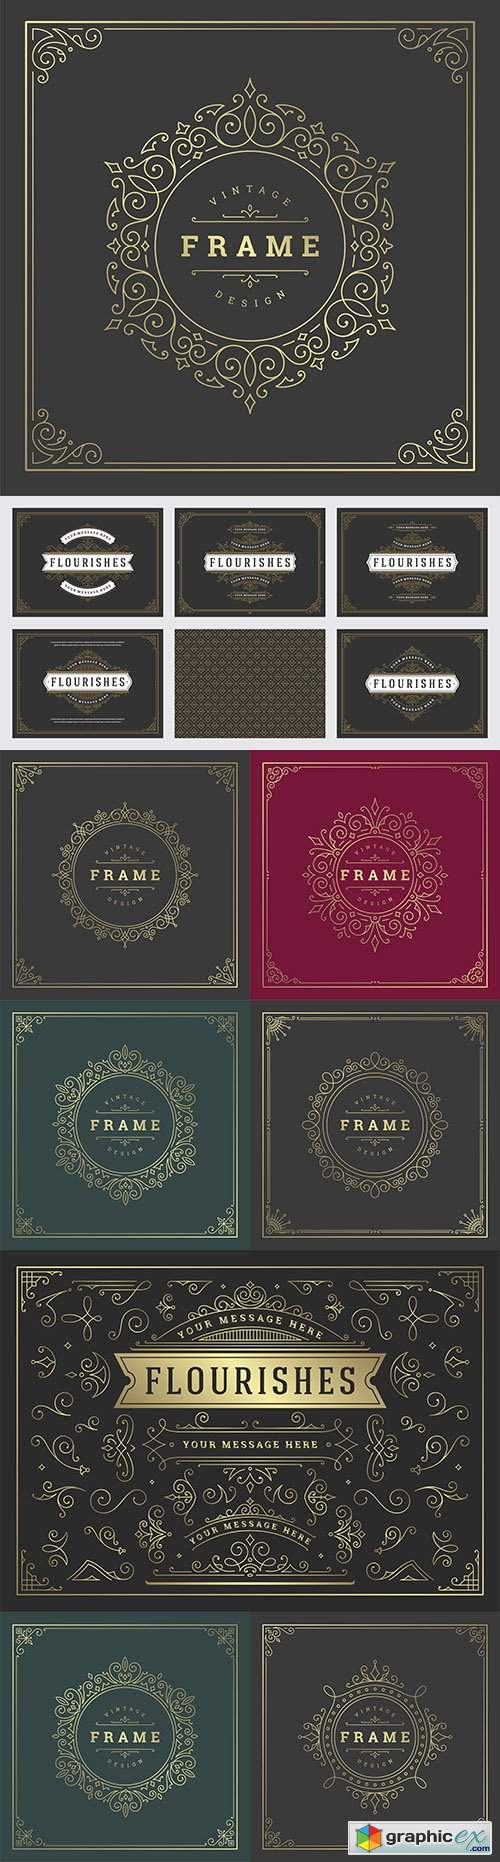 Vintage decorative ornament frame line design template